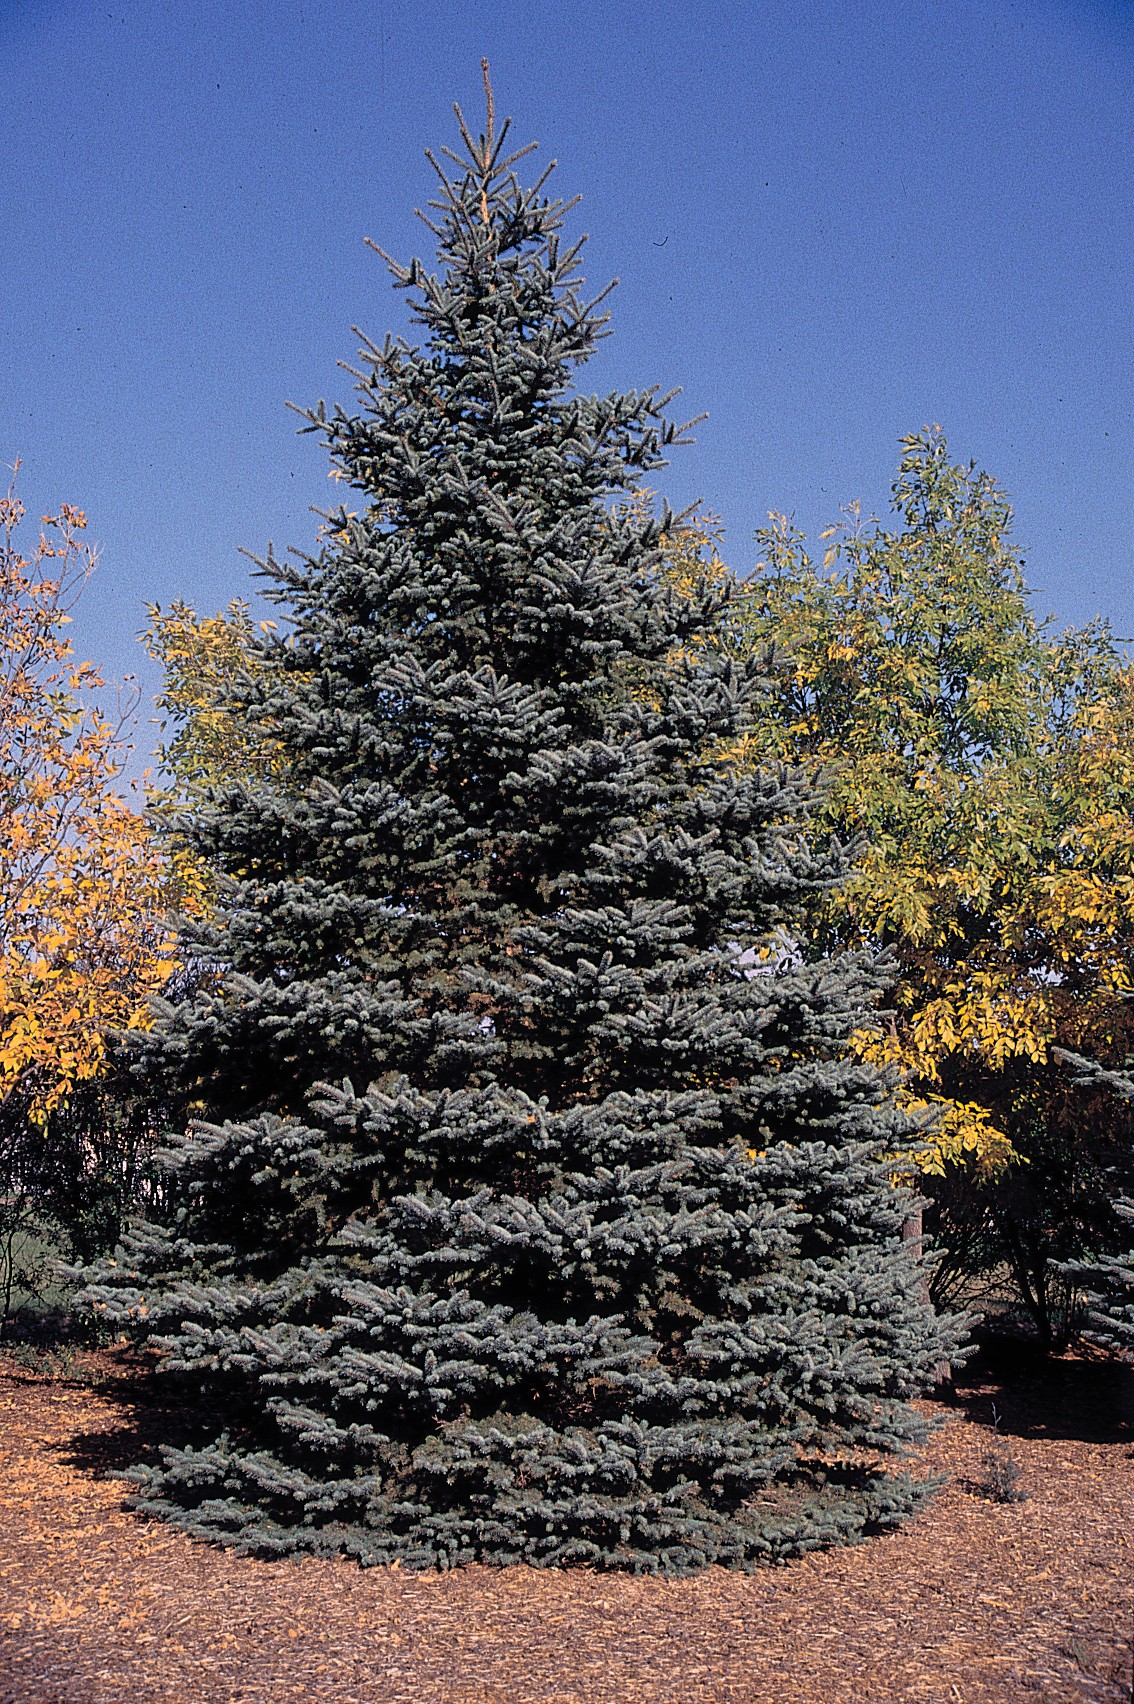 Colorado blue spruce trees do not need to be pruned, but they can be pruned if you wish to promote denser foliage. Prune off half of the fresh growth on each candle (that is, the tip at which branch growth occurs each year) in spring. Make sure to water young plants during dry spells.